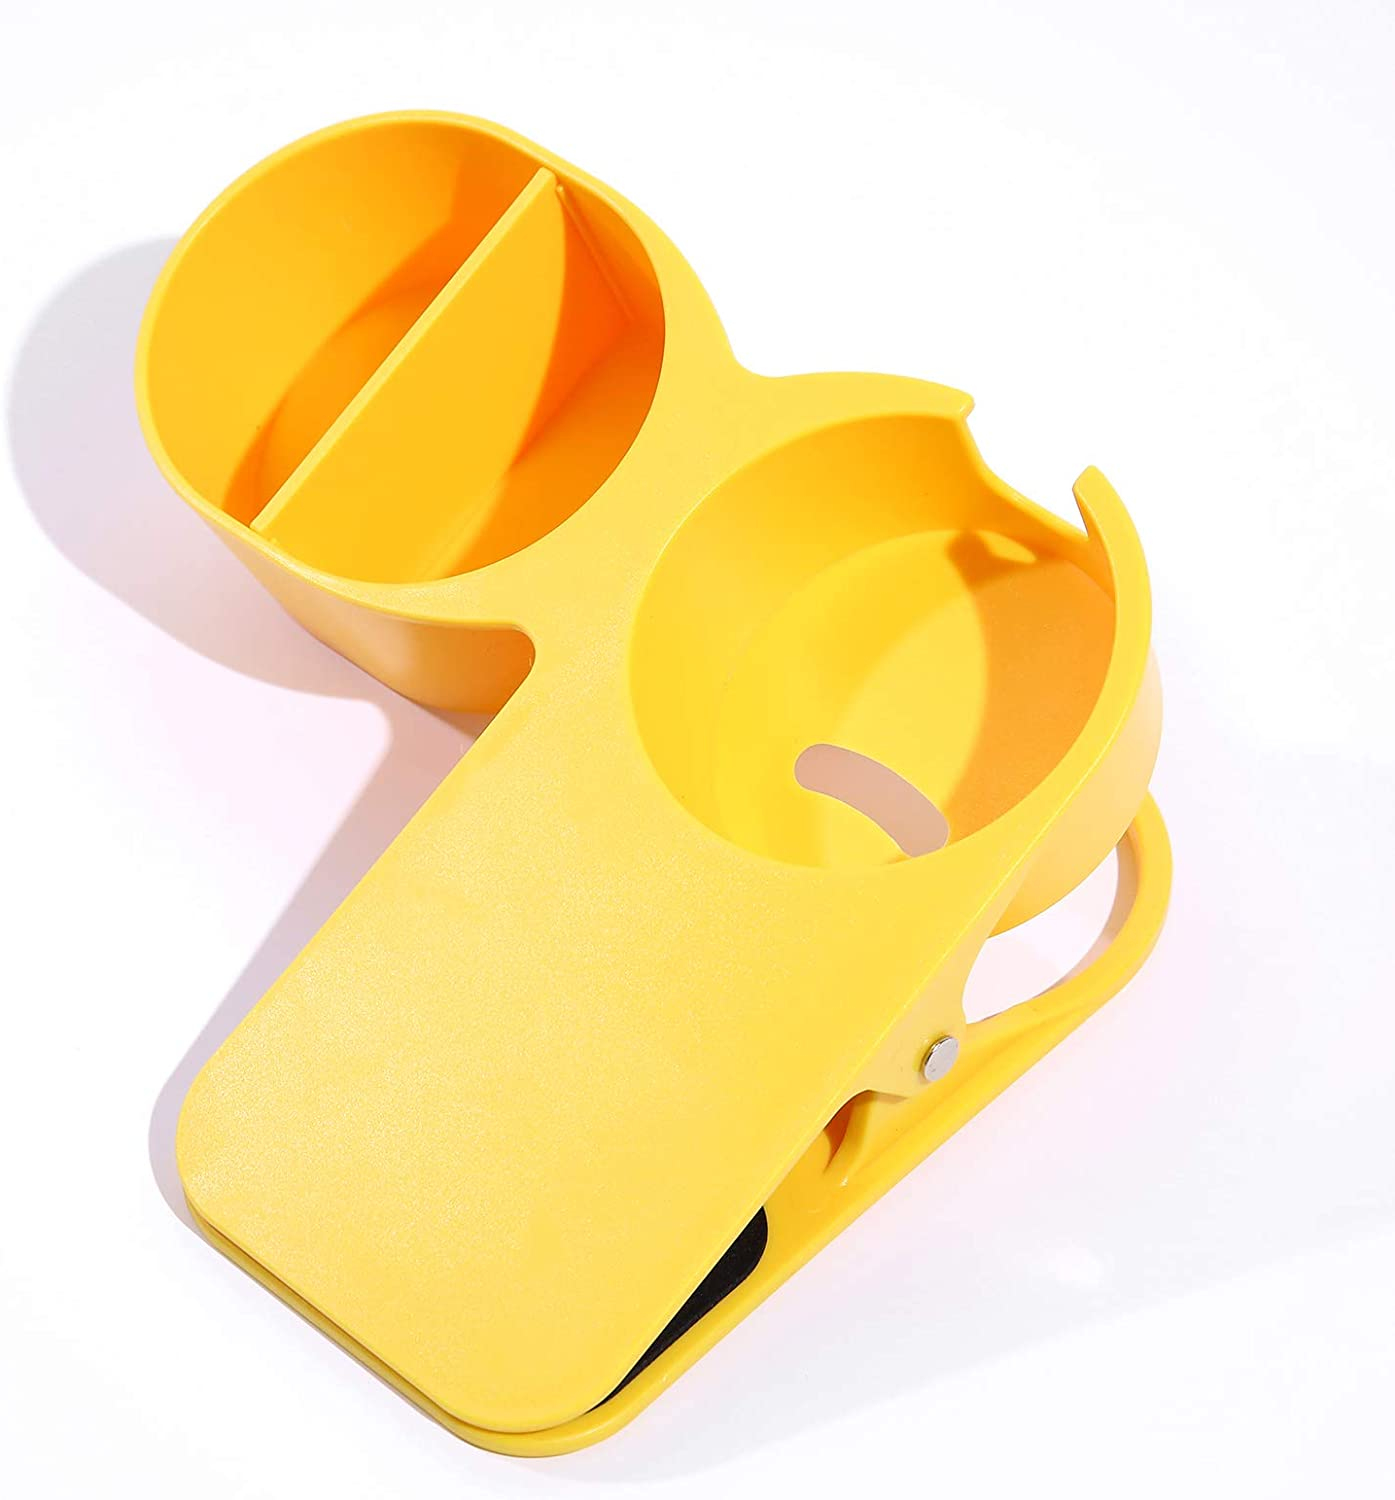 SunnyZoo Drinking Beverage Cup Holder Clip Home Office Table Desk Side Clip Water Coffee Mug Holder with Extra Storage Tray Design (Yellow)